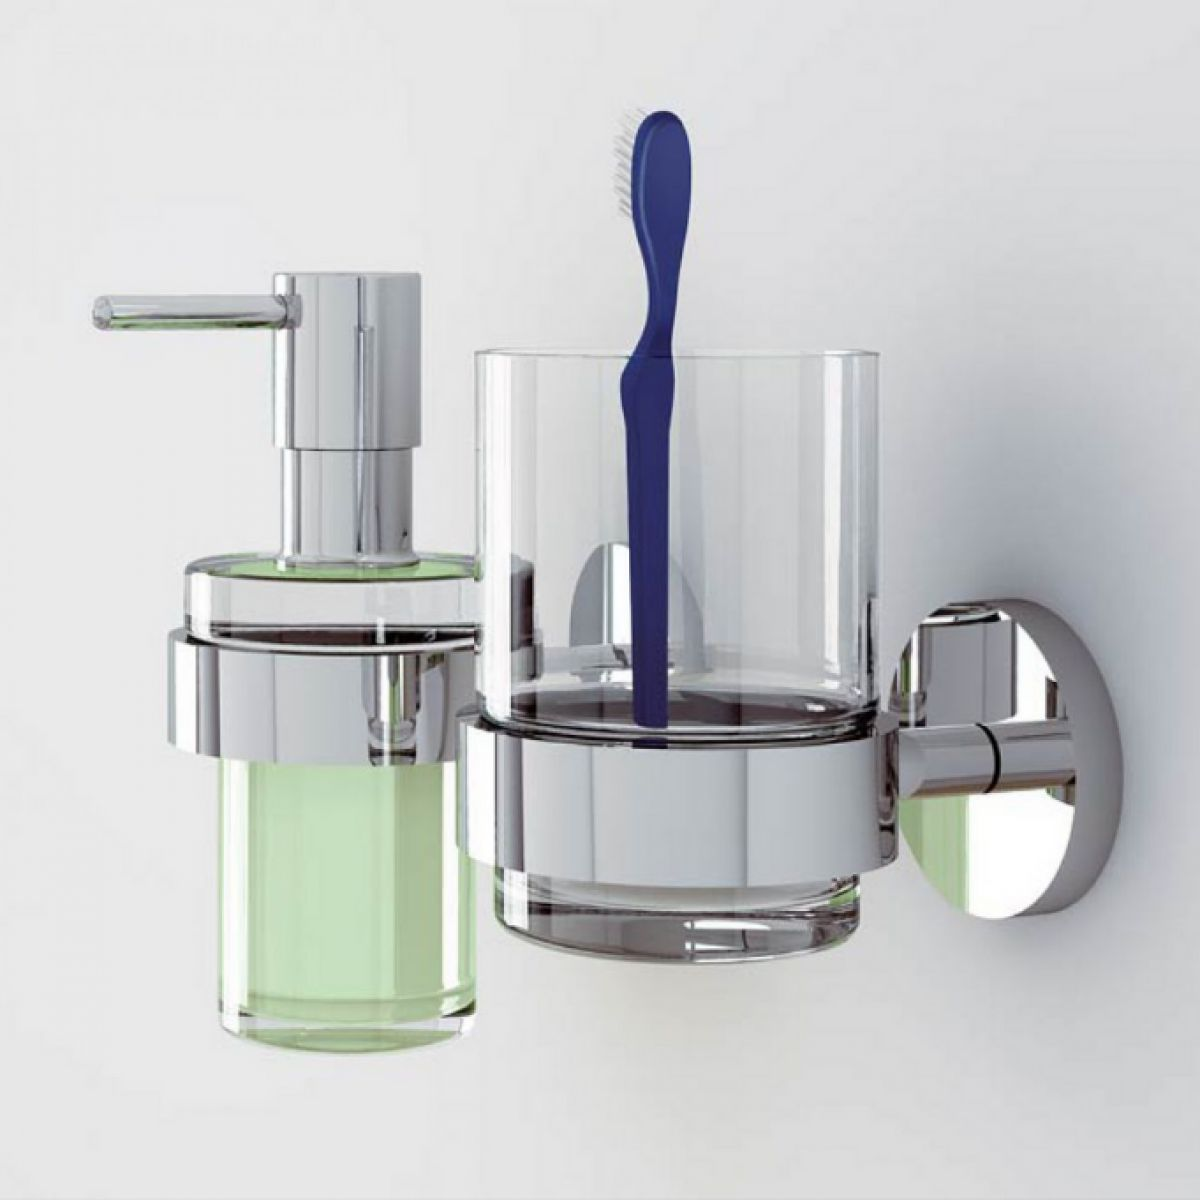 Grohe essentials glass tumbler with holder uk bathrooms for Bathroom accessories grohe